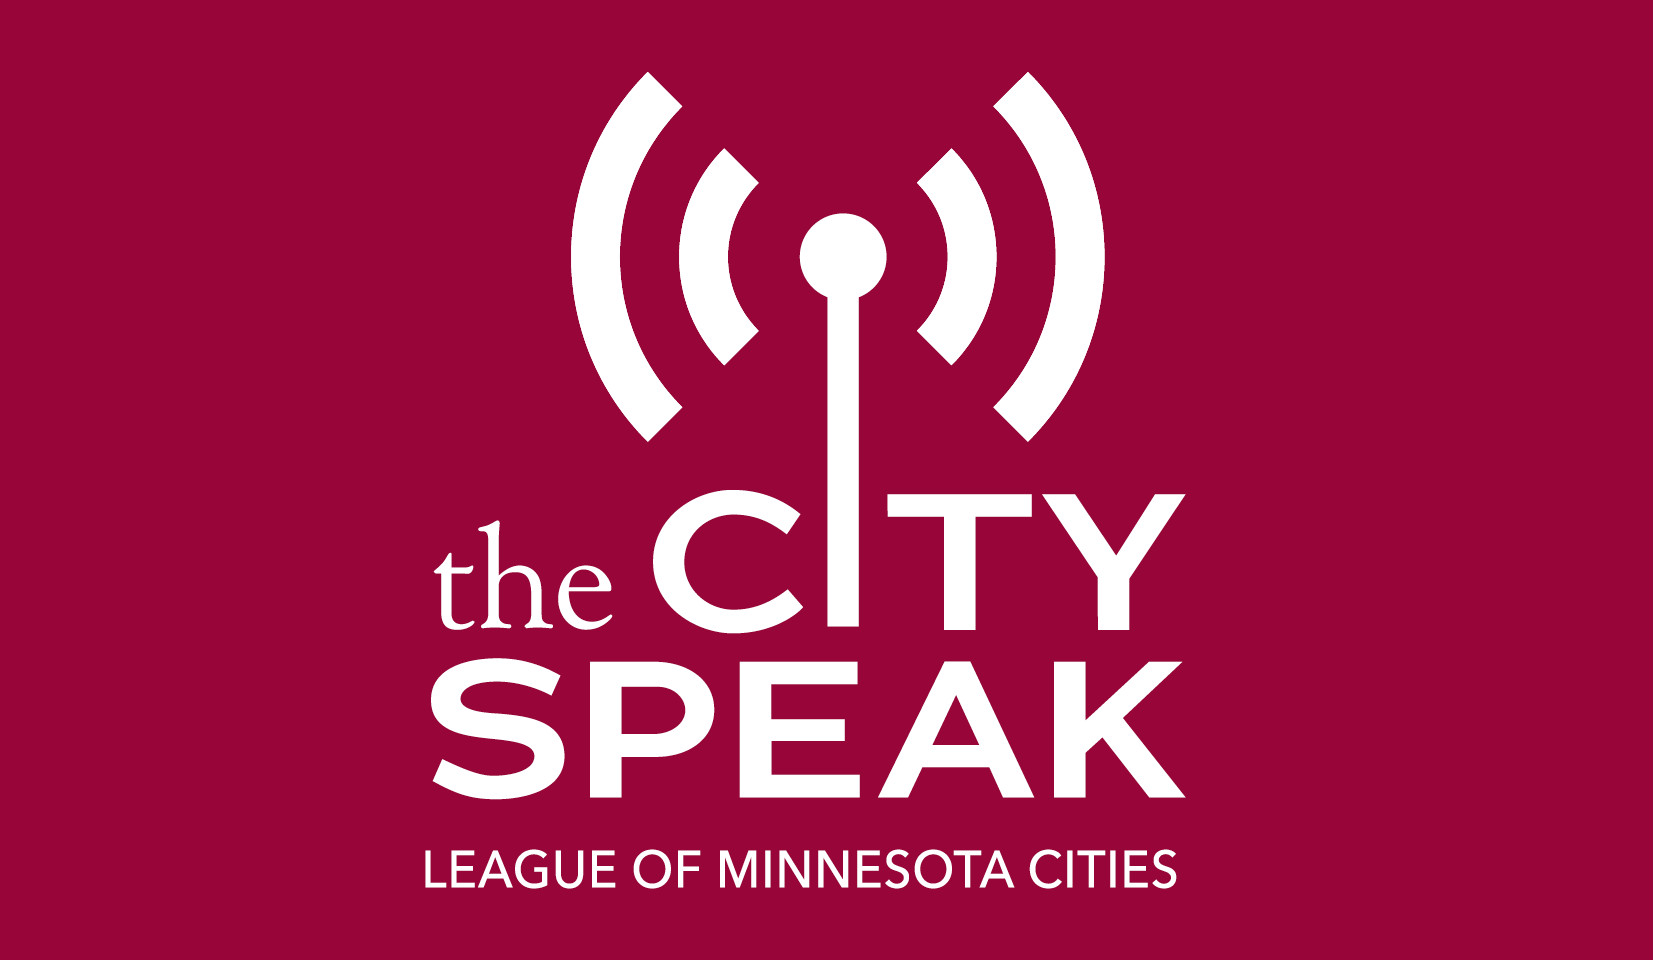 The City Speak - League of Minnesota Cities - white text on a cranberry background